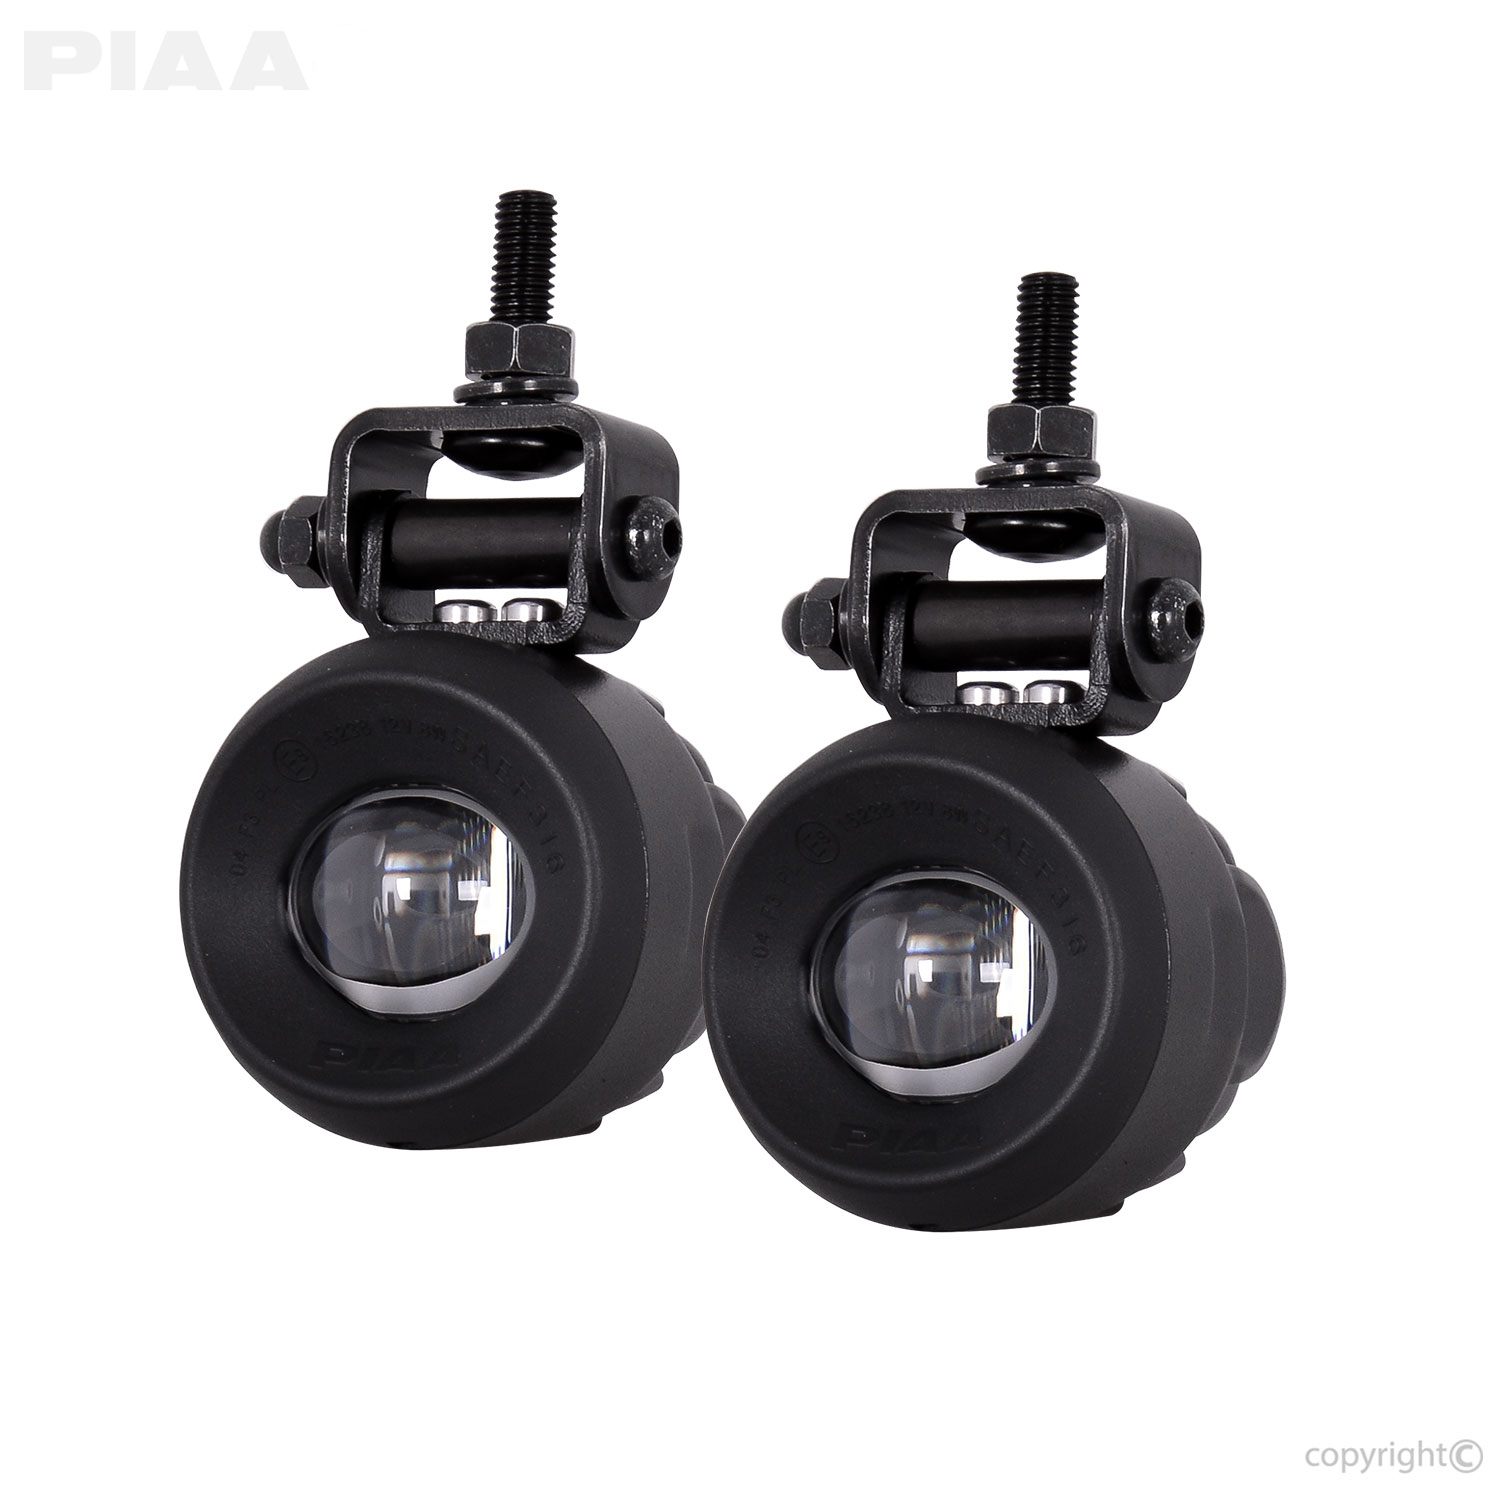 piaa 26 01202 led 1100p dual hr?bw=1000&w=1000&bh=1000&h=1000 piaa piaa 1100p led white all terrain pattern 26 01202 piaa 520 wiring diagram at fashall.co